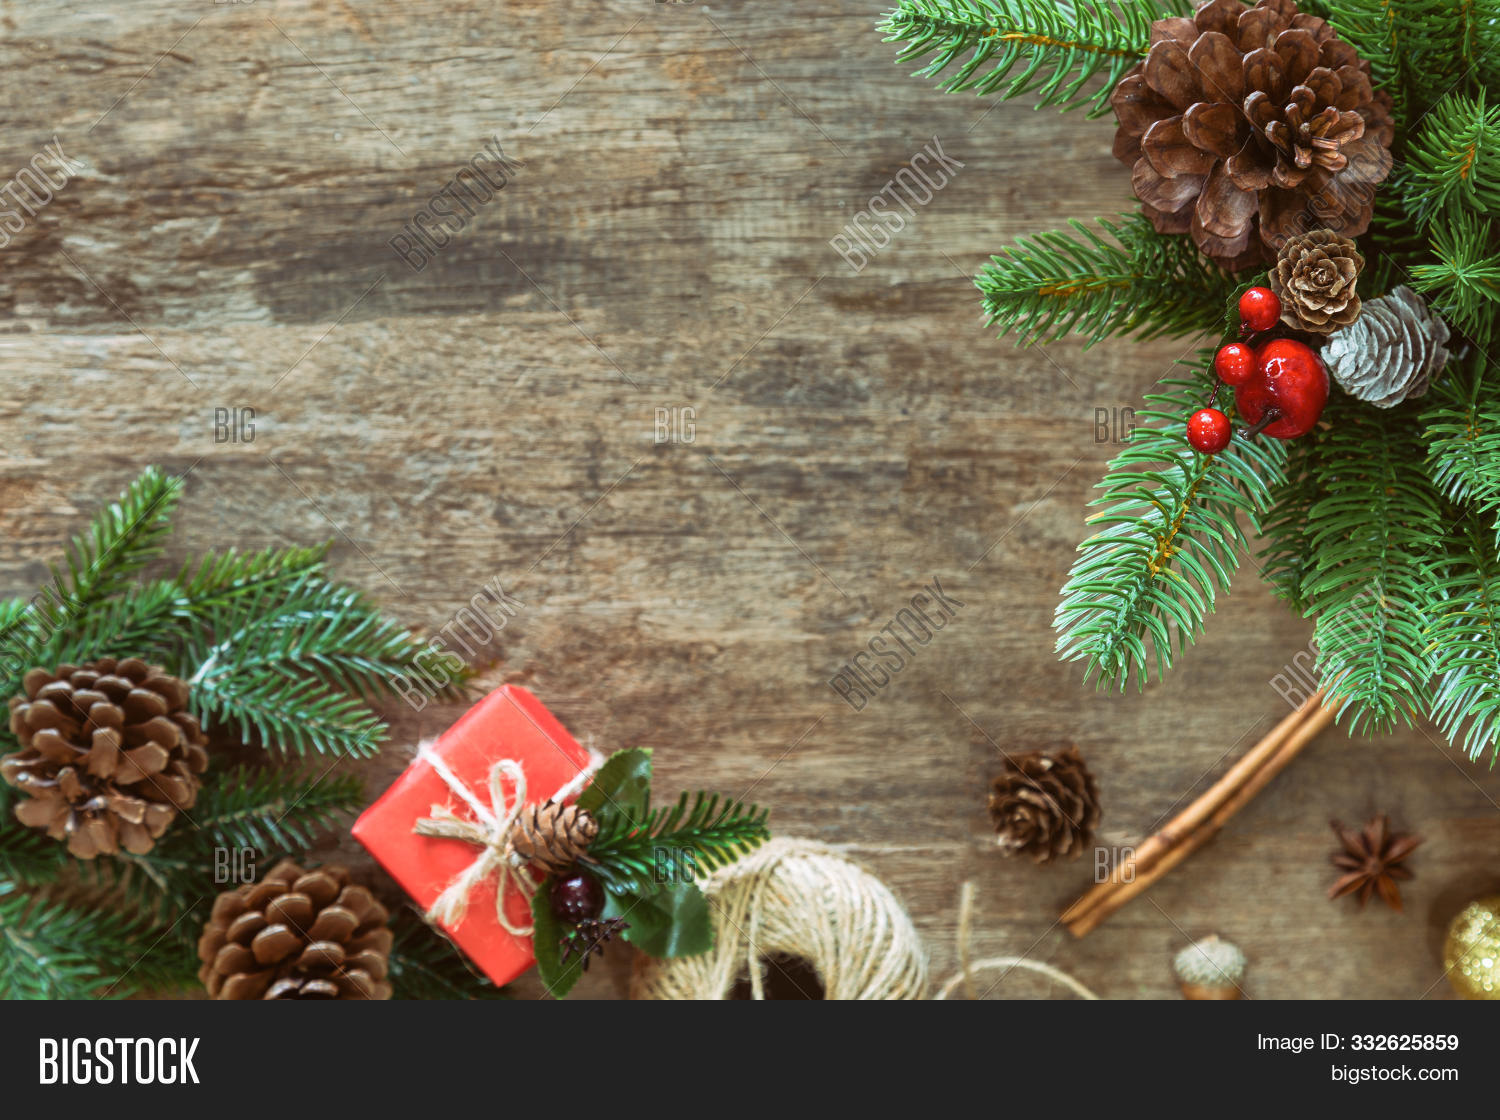 Holiday Christmas wood wallpaper with gift box. Christmas card in top view flat lay with festive decoration. Sweet greeting card christmas , christmas ornaments background with copy space, christmas artwork design about Christmas festival background.